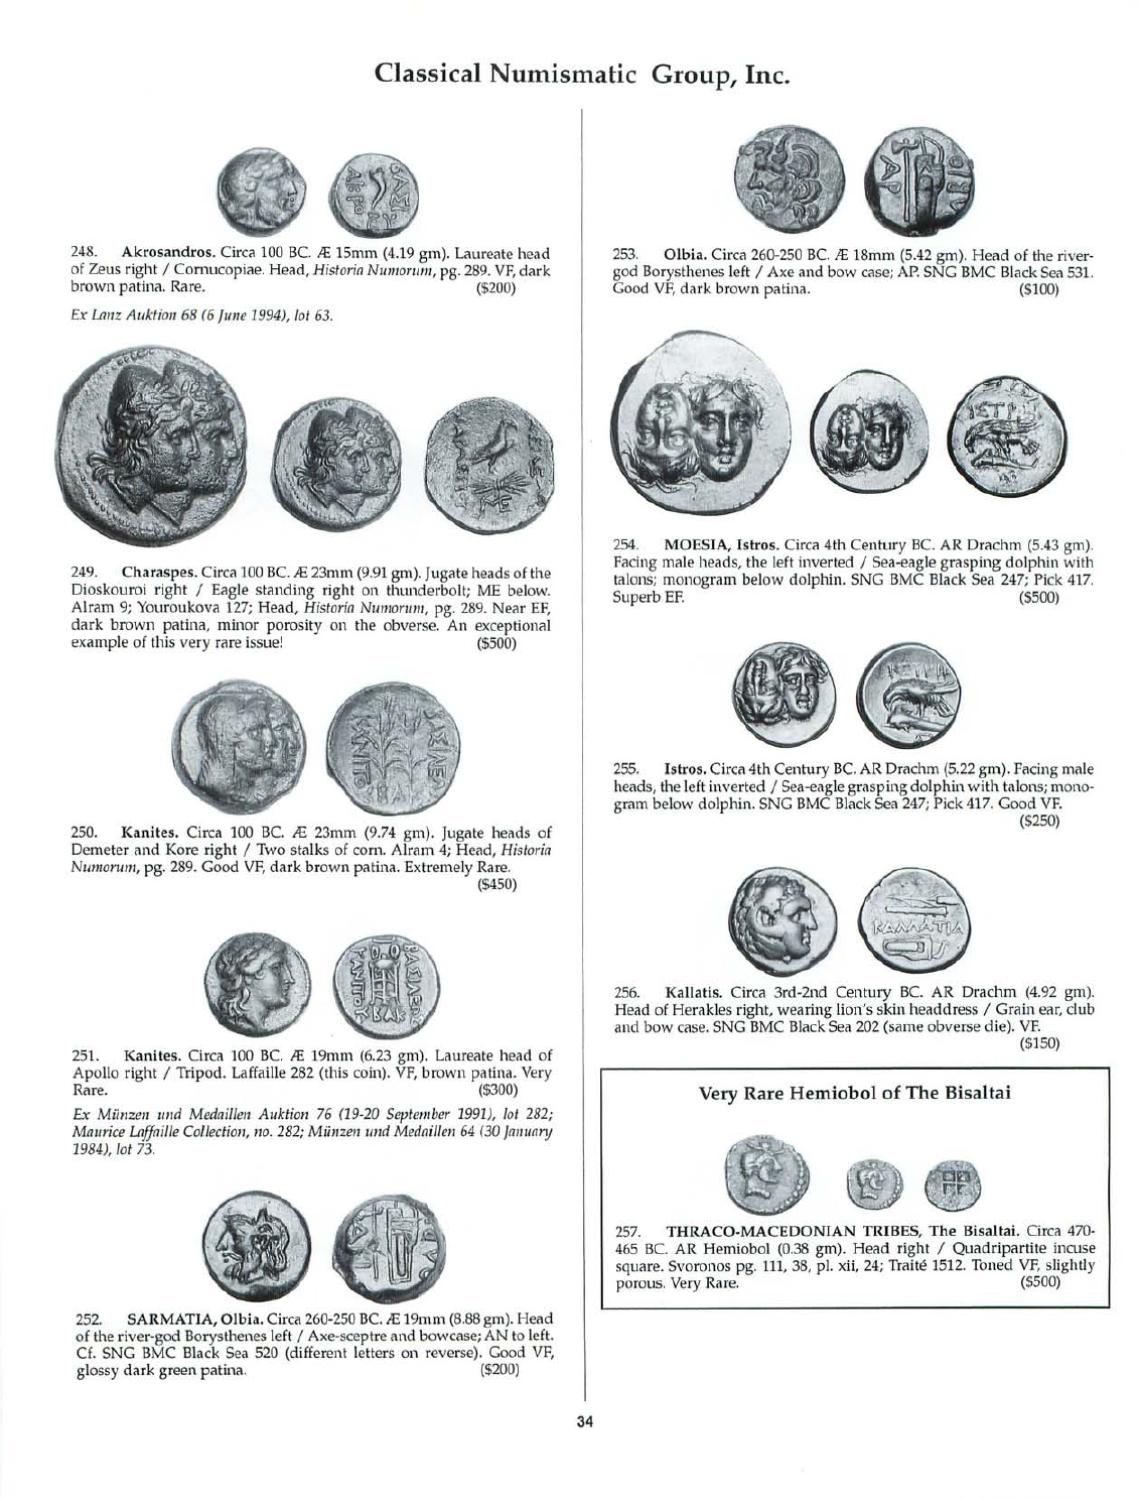 Cng49 By Classical Numismatic Group Llc Issuu